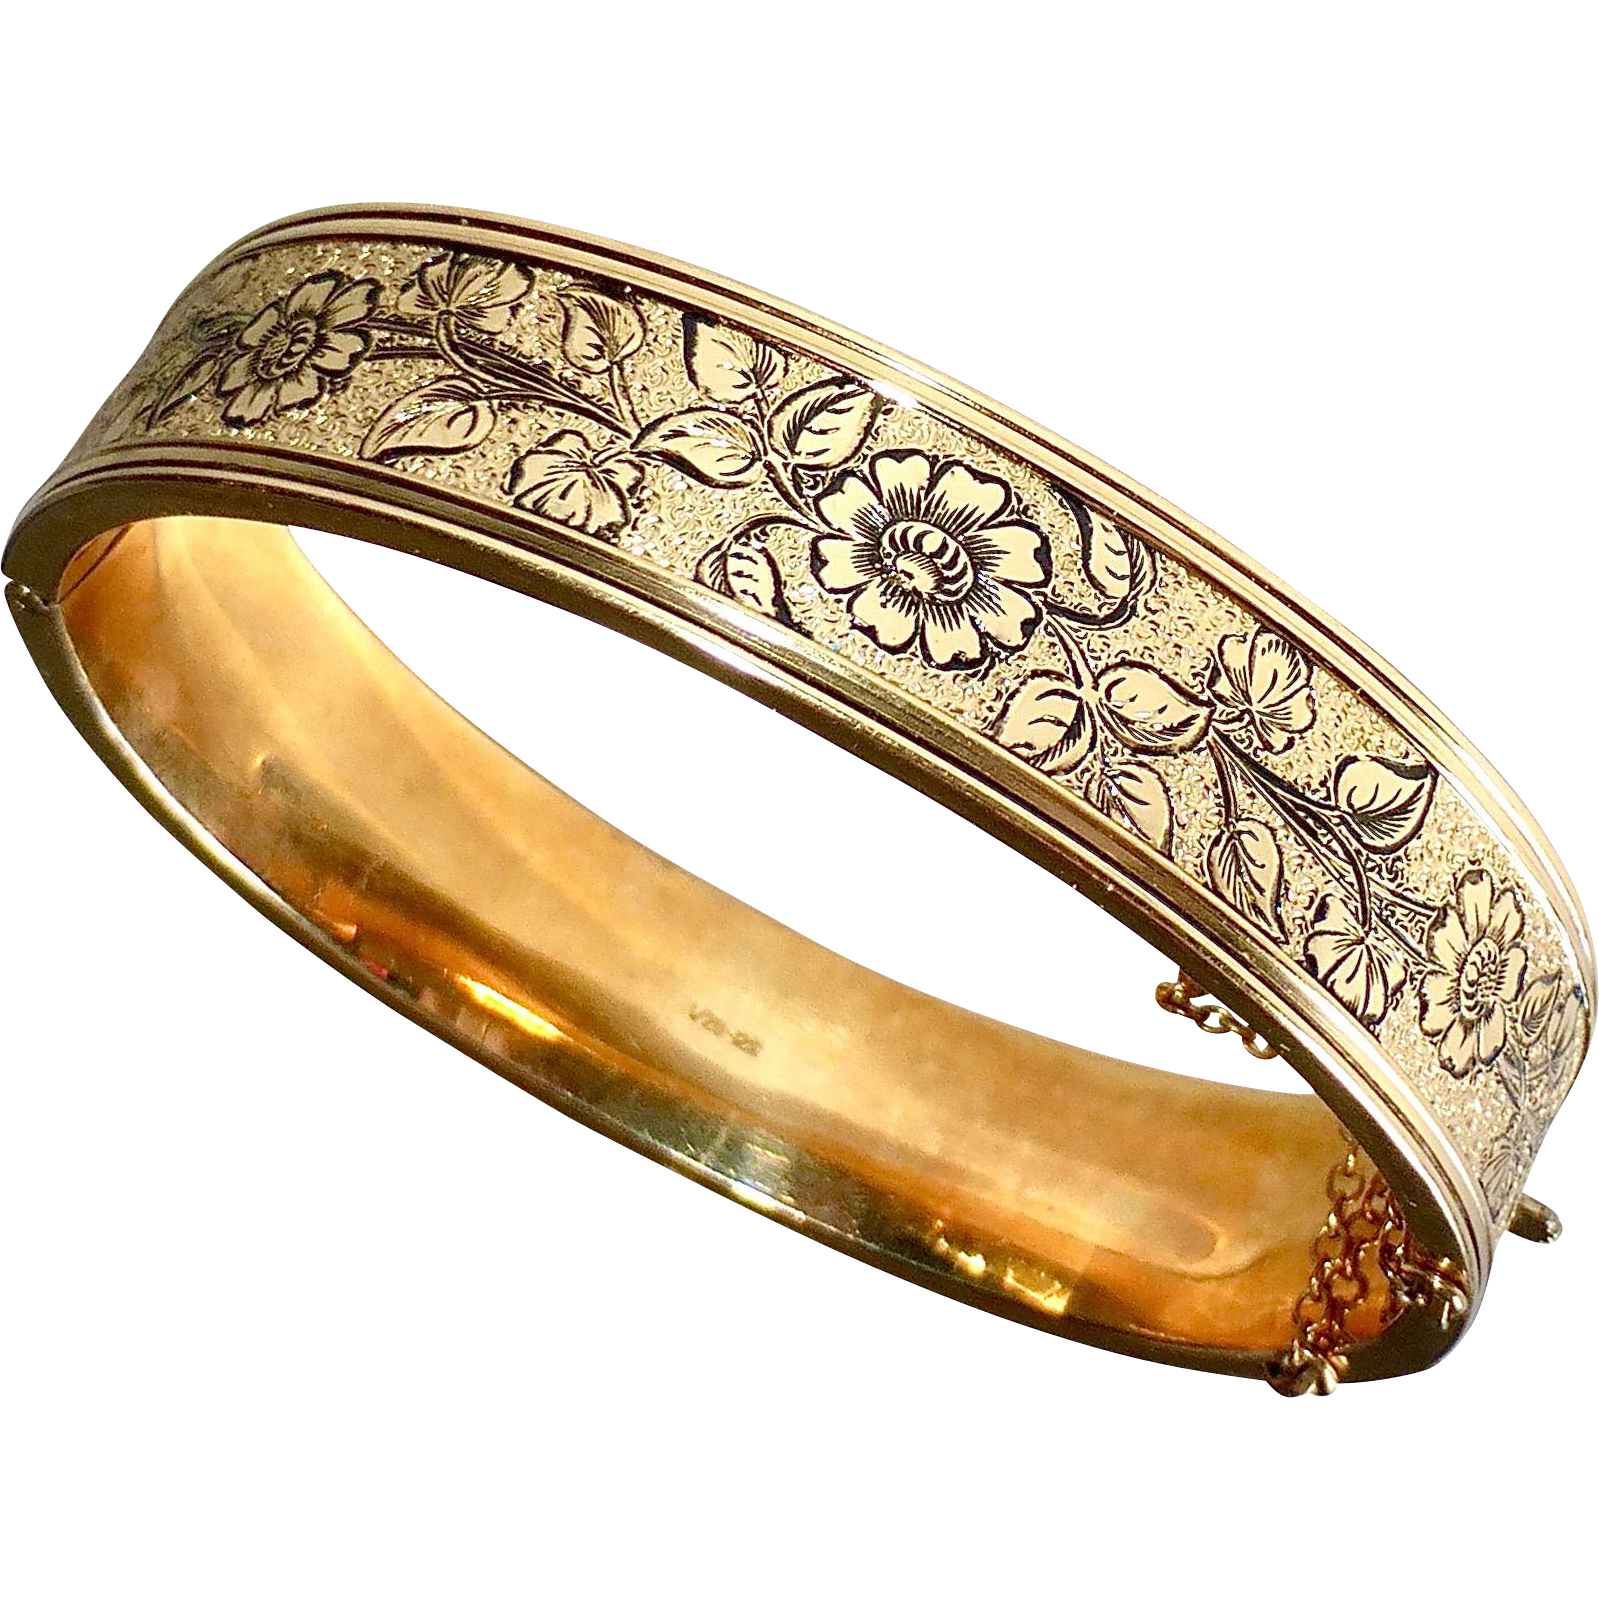 Victorian Revival Gold Filled Engraved & Enameled Hinged Bracelet